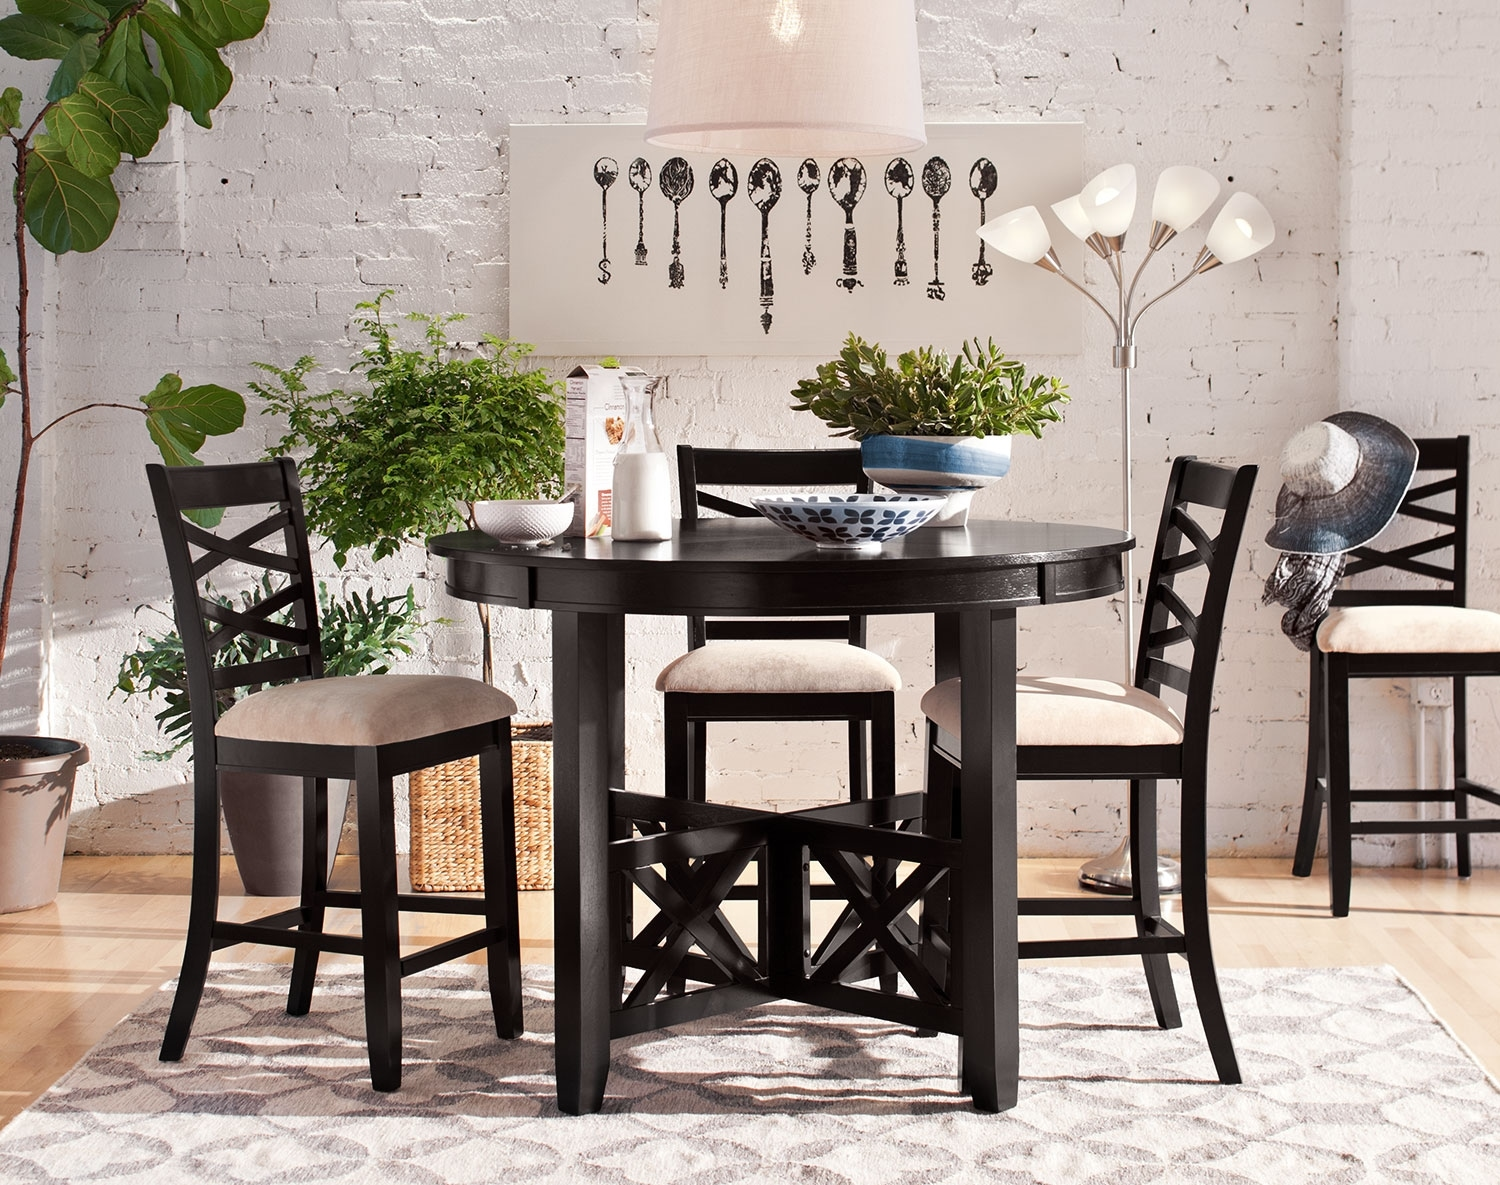 Dining Room Furniture - The Davis II Collection - 5 Pc. Counter-Height Dinette